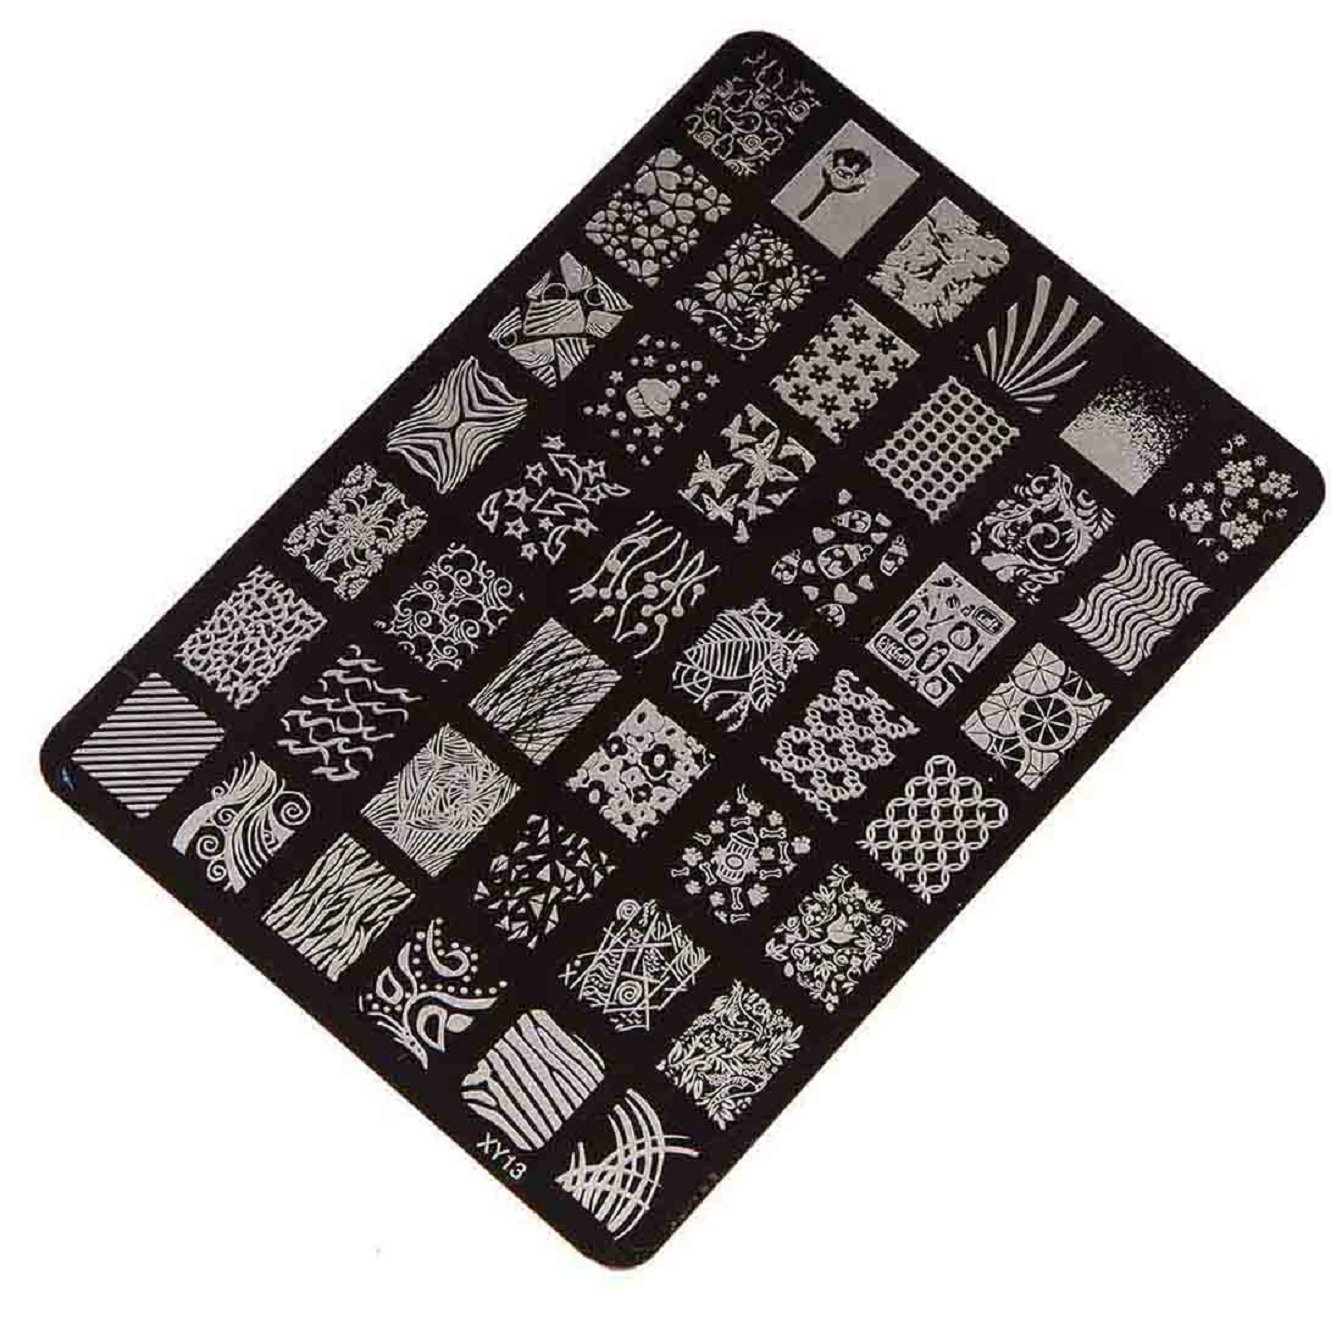 Sannysis Nail Stamping Printing Plate Manicure Nail Art Decor Image Stamps Plate